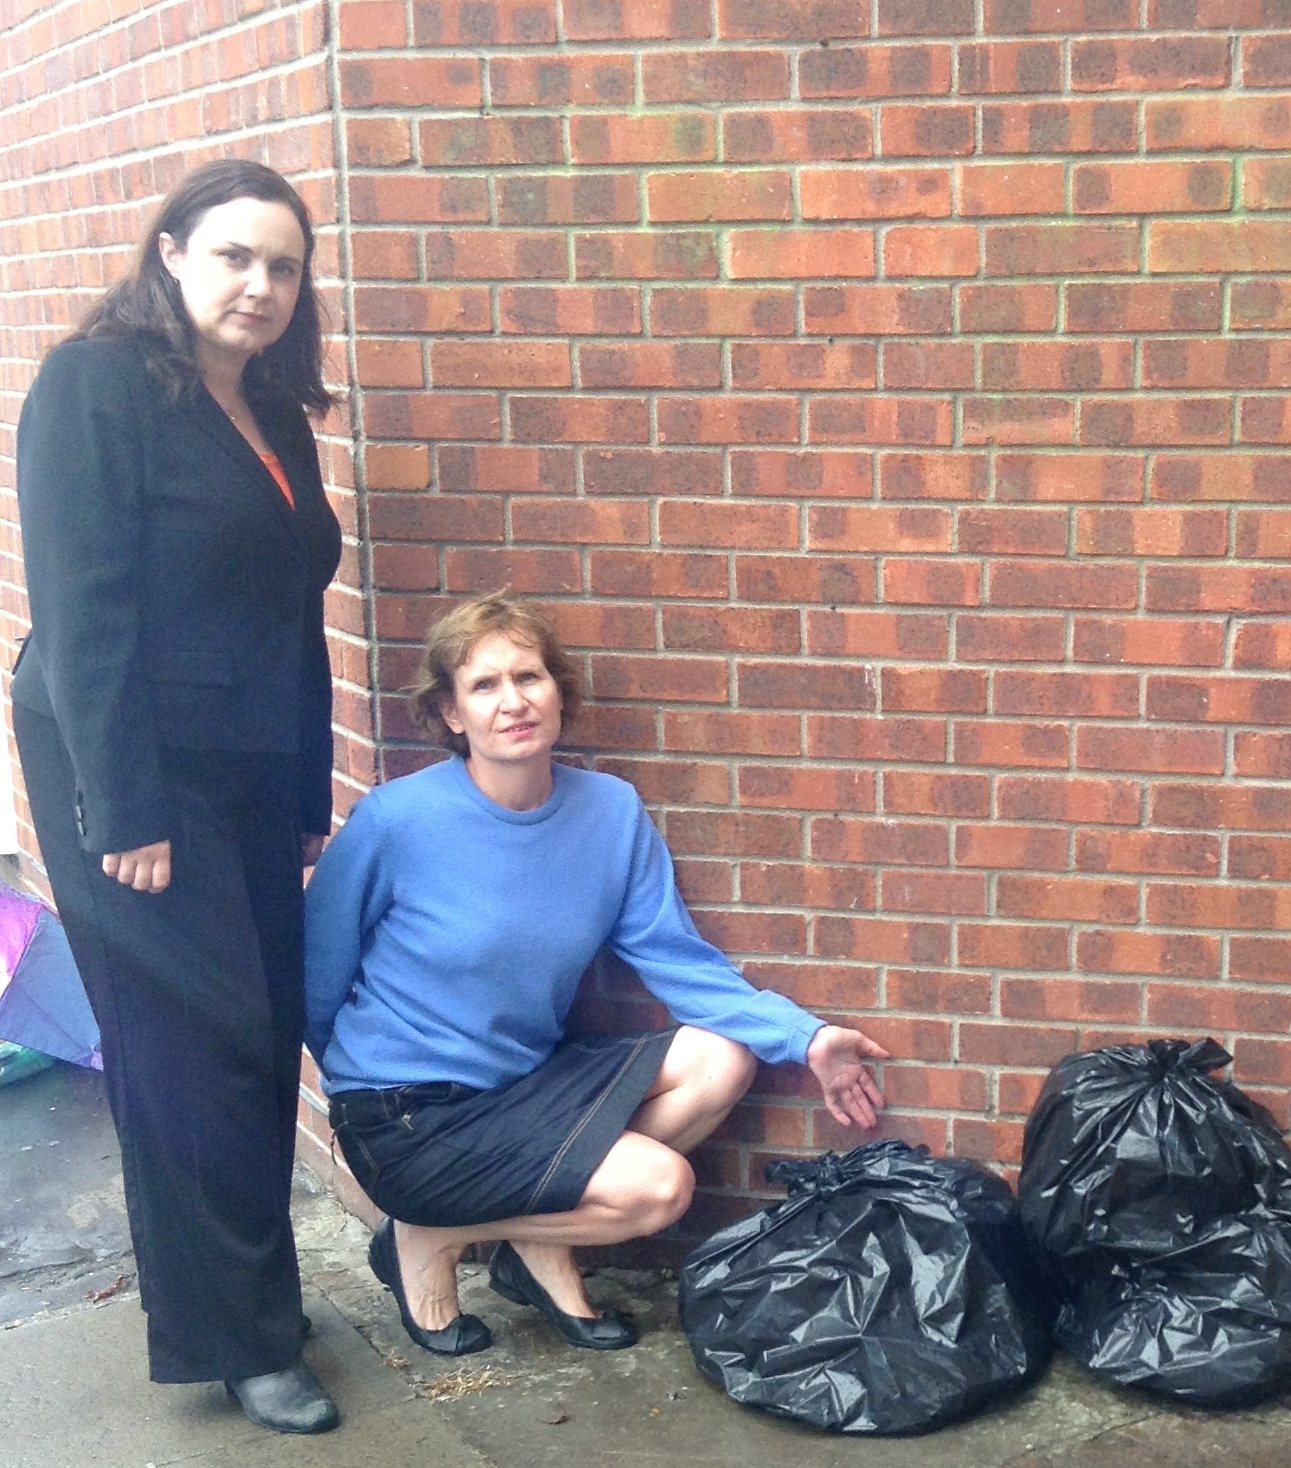 Labour set to charge £1.85 for a bin bag